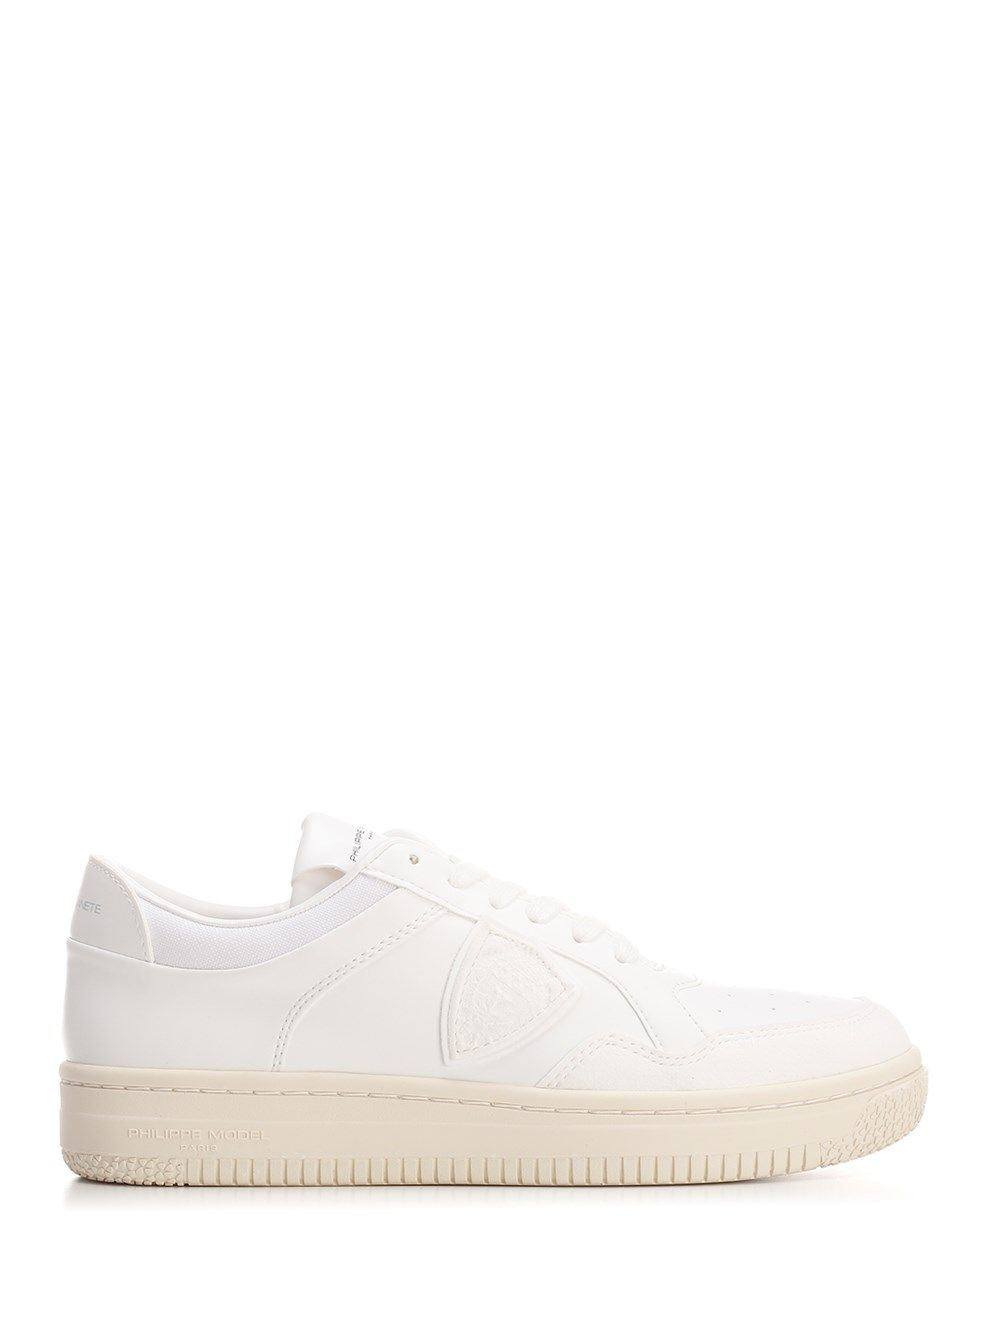 Philippe Model PHILIPPE MODEL WOMEN'S ELYLDBL01 WHITE OTHER MATERIALS SNEAKERS